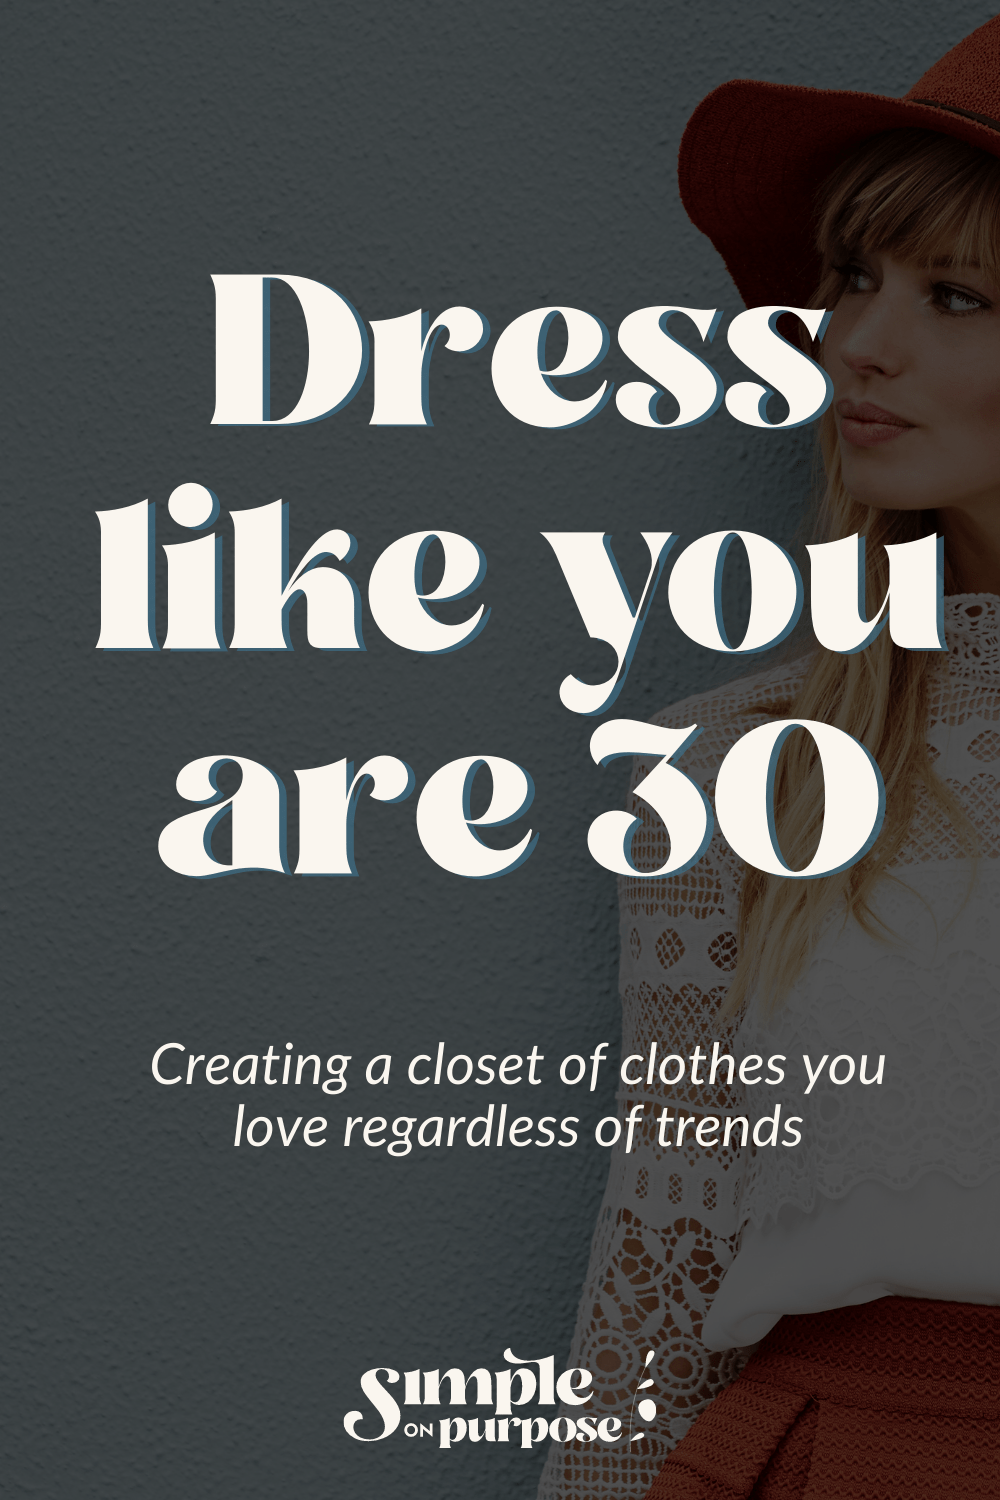 creating a closet of clothes you love regardless of trends